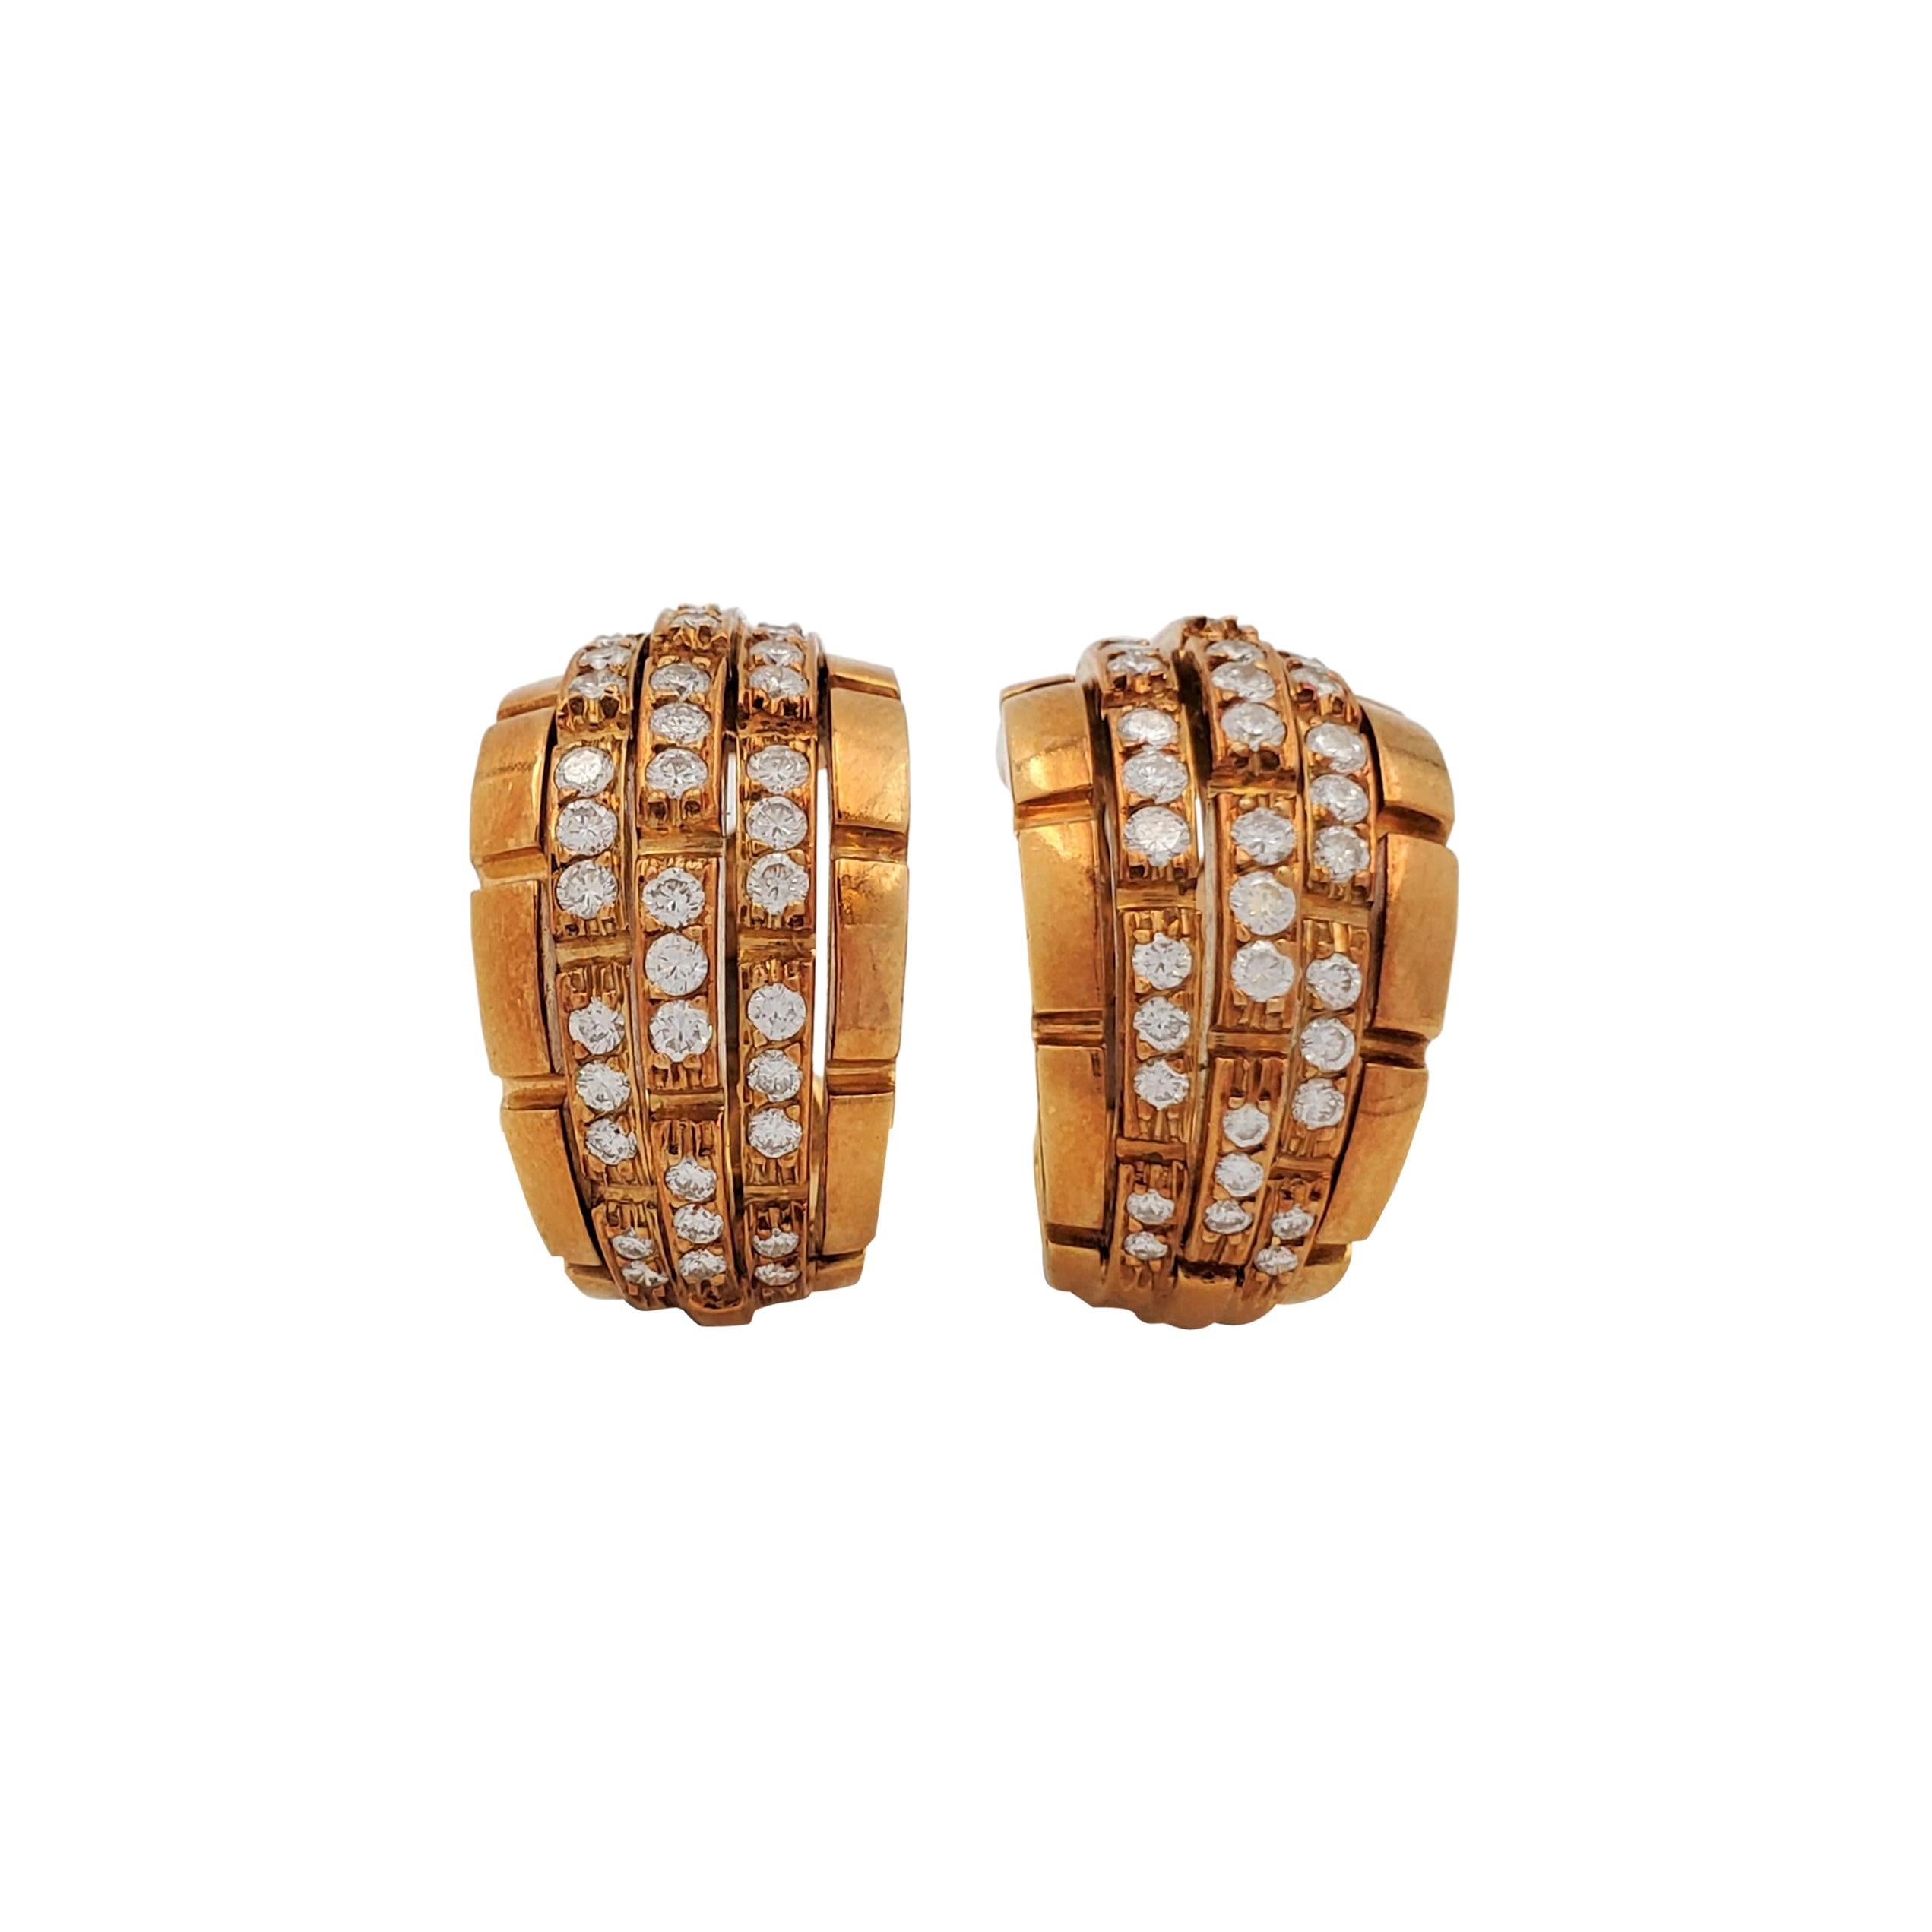 Vintage Cartier 5-Row 'Maillon Panthere' Yellow Gold and Diamond Earrings